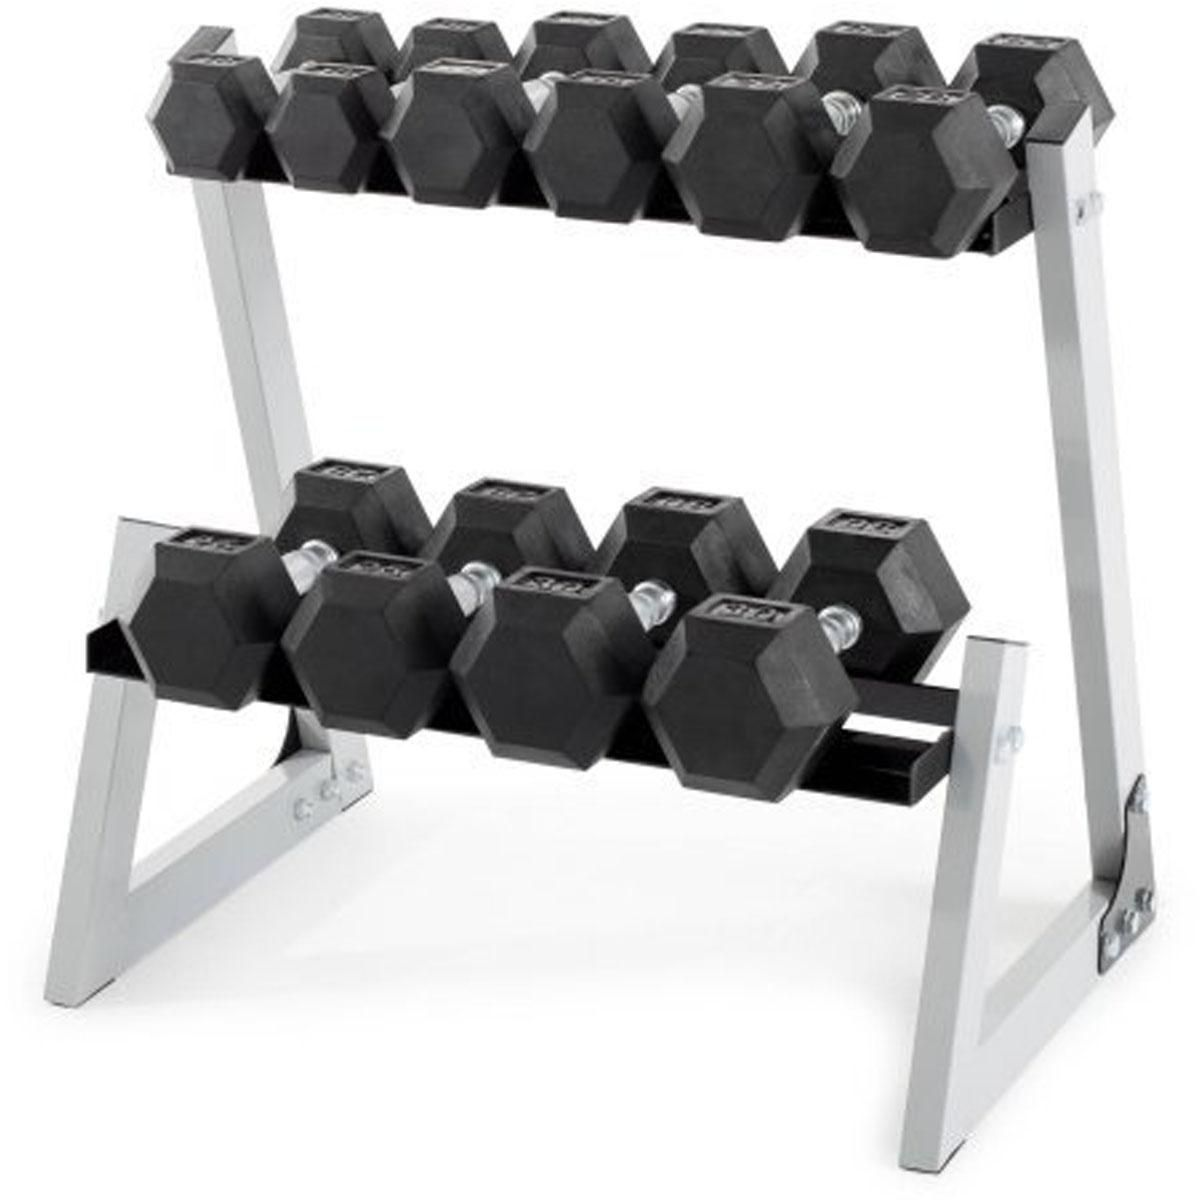 Weider 200 Lb Dumbbell Set With Rack